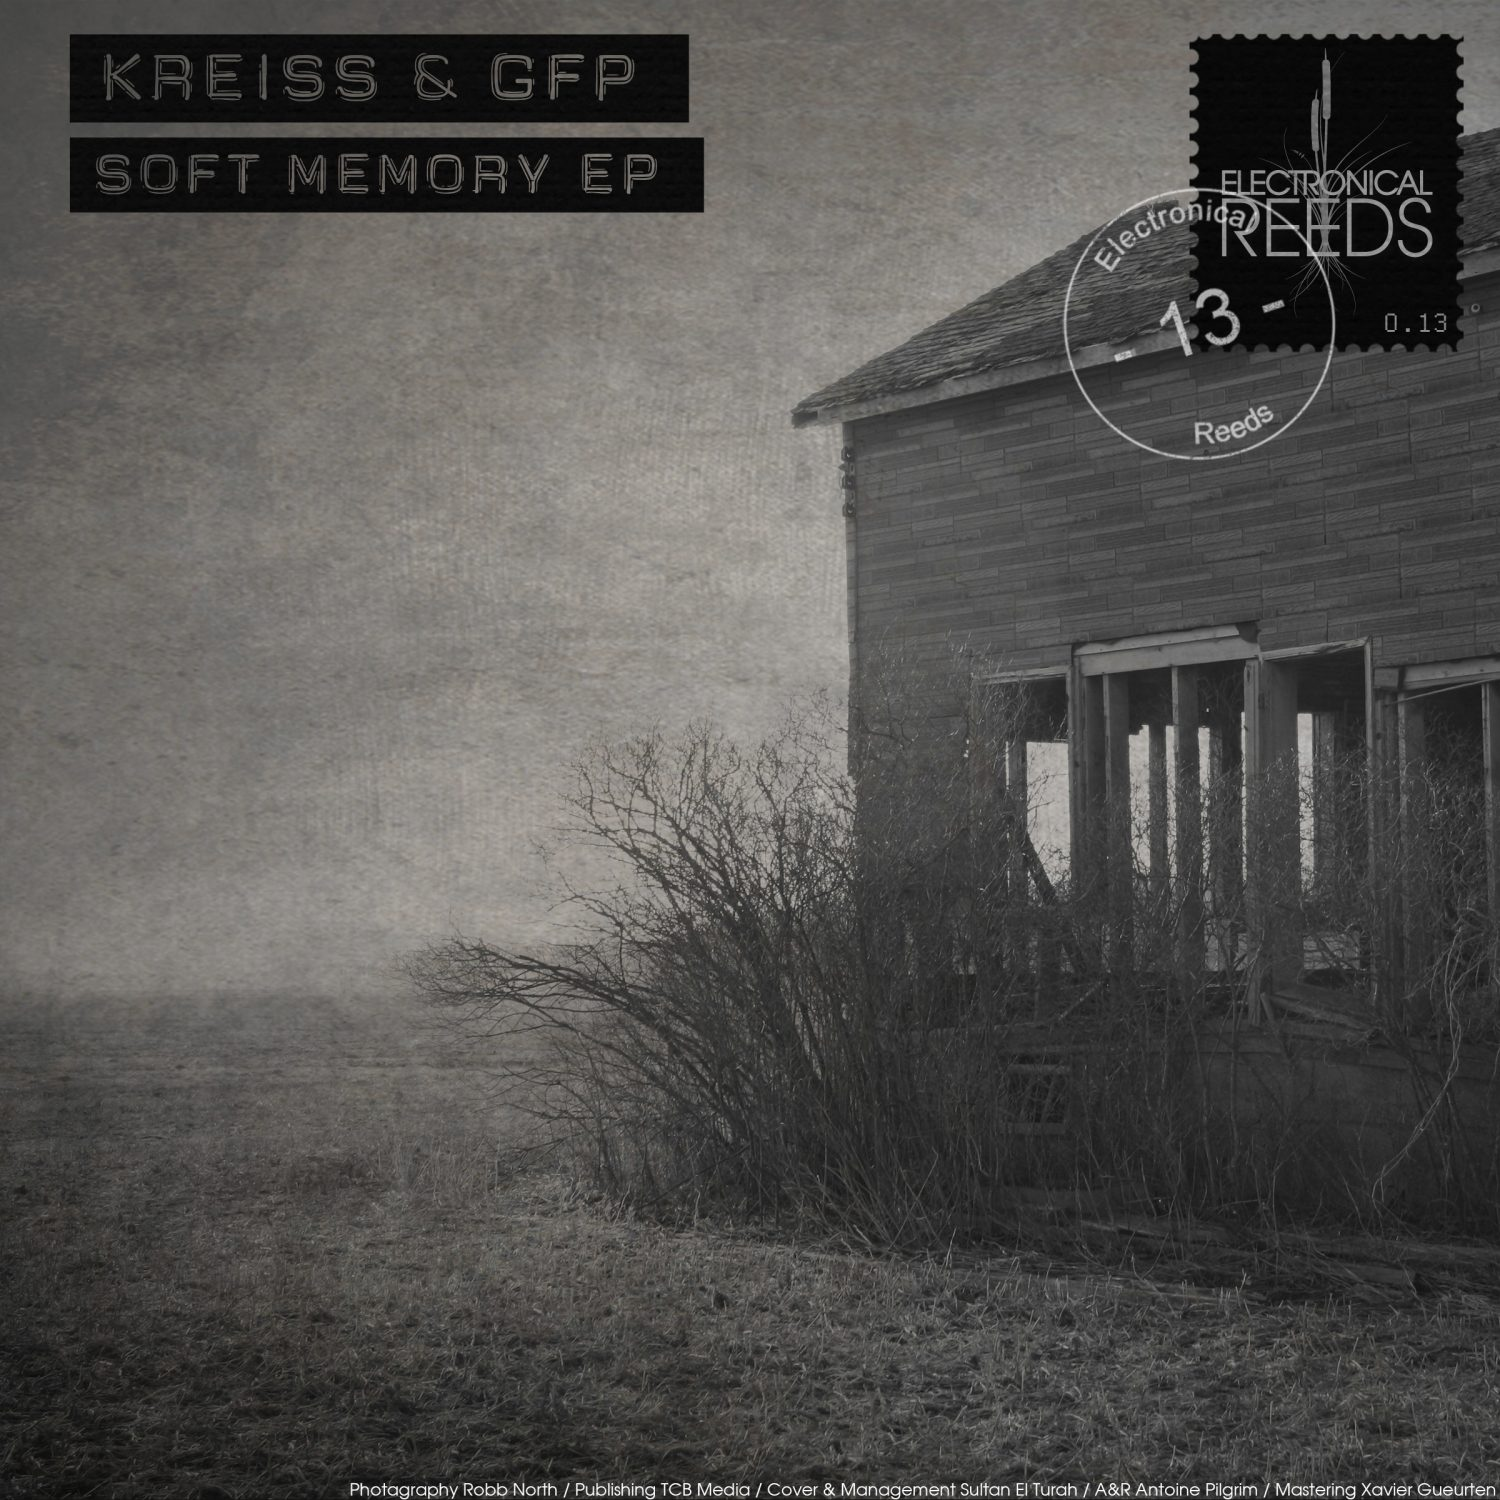 ER013 - Kreiss & GFP - Soft Memory EP - Electronical Reeds